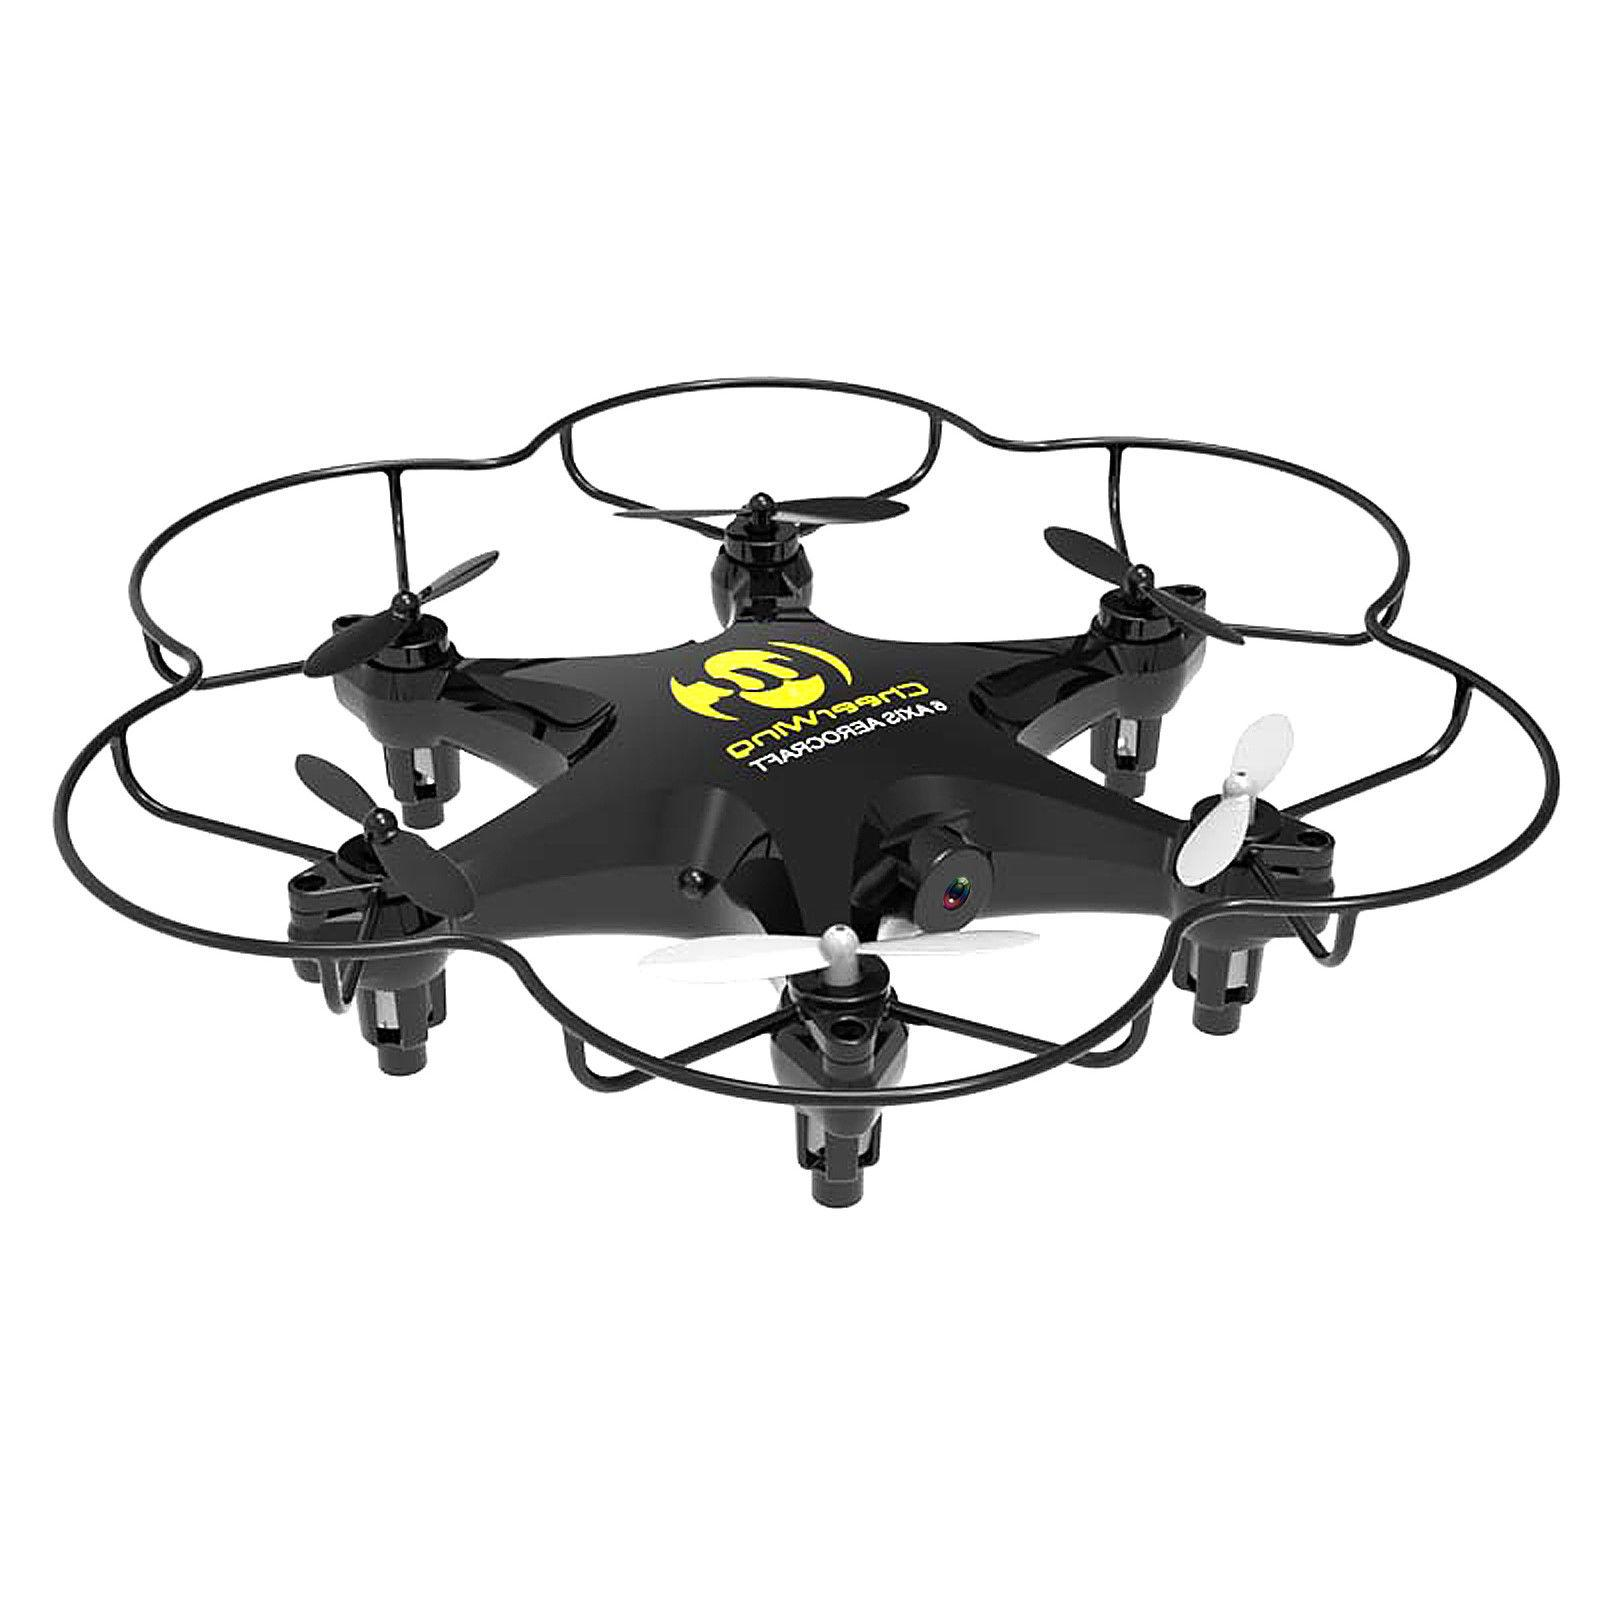 Cheerwing CW6 RC Hexacopter Mini Drone w/2MP Camera